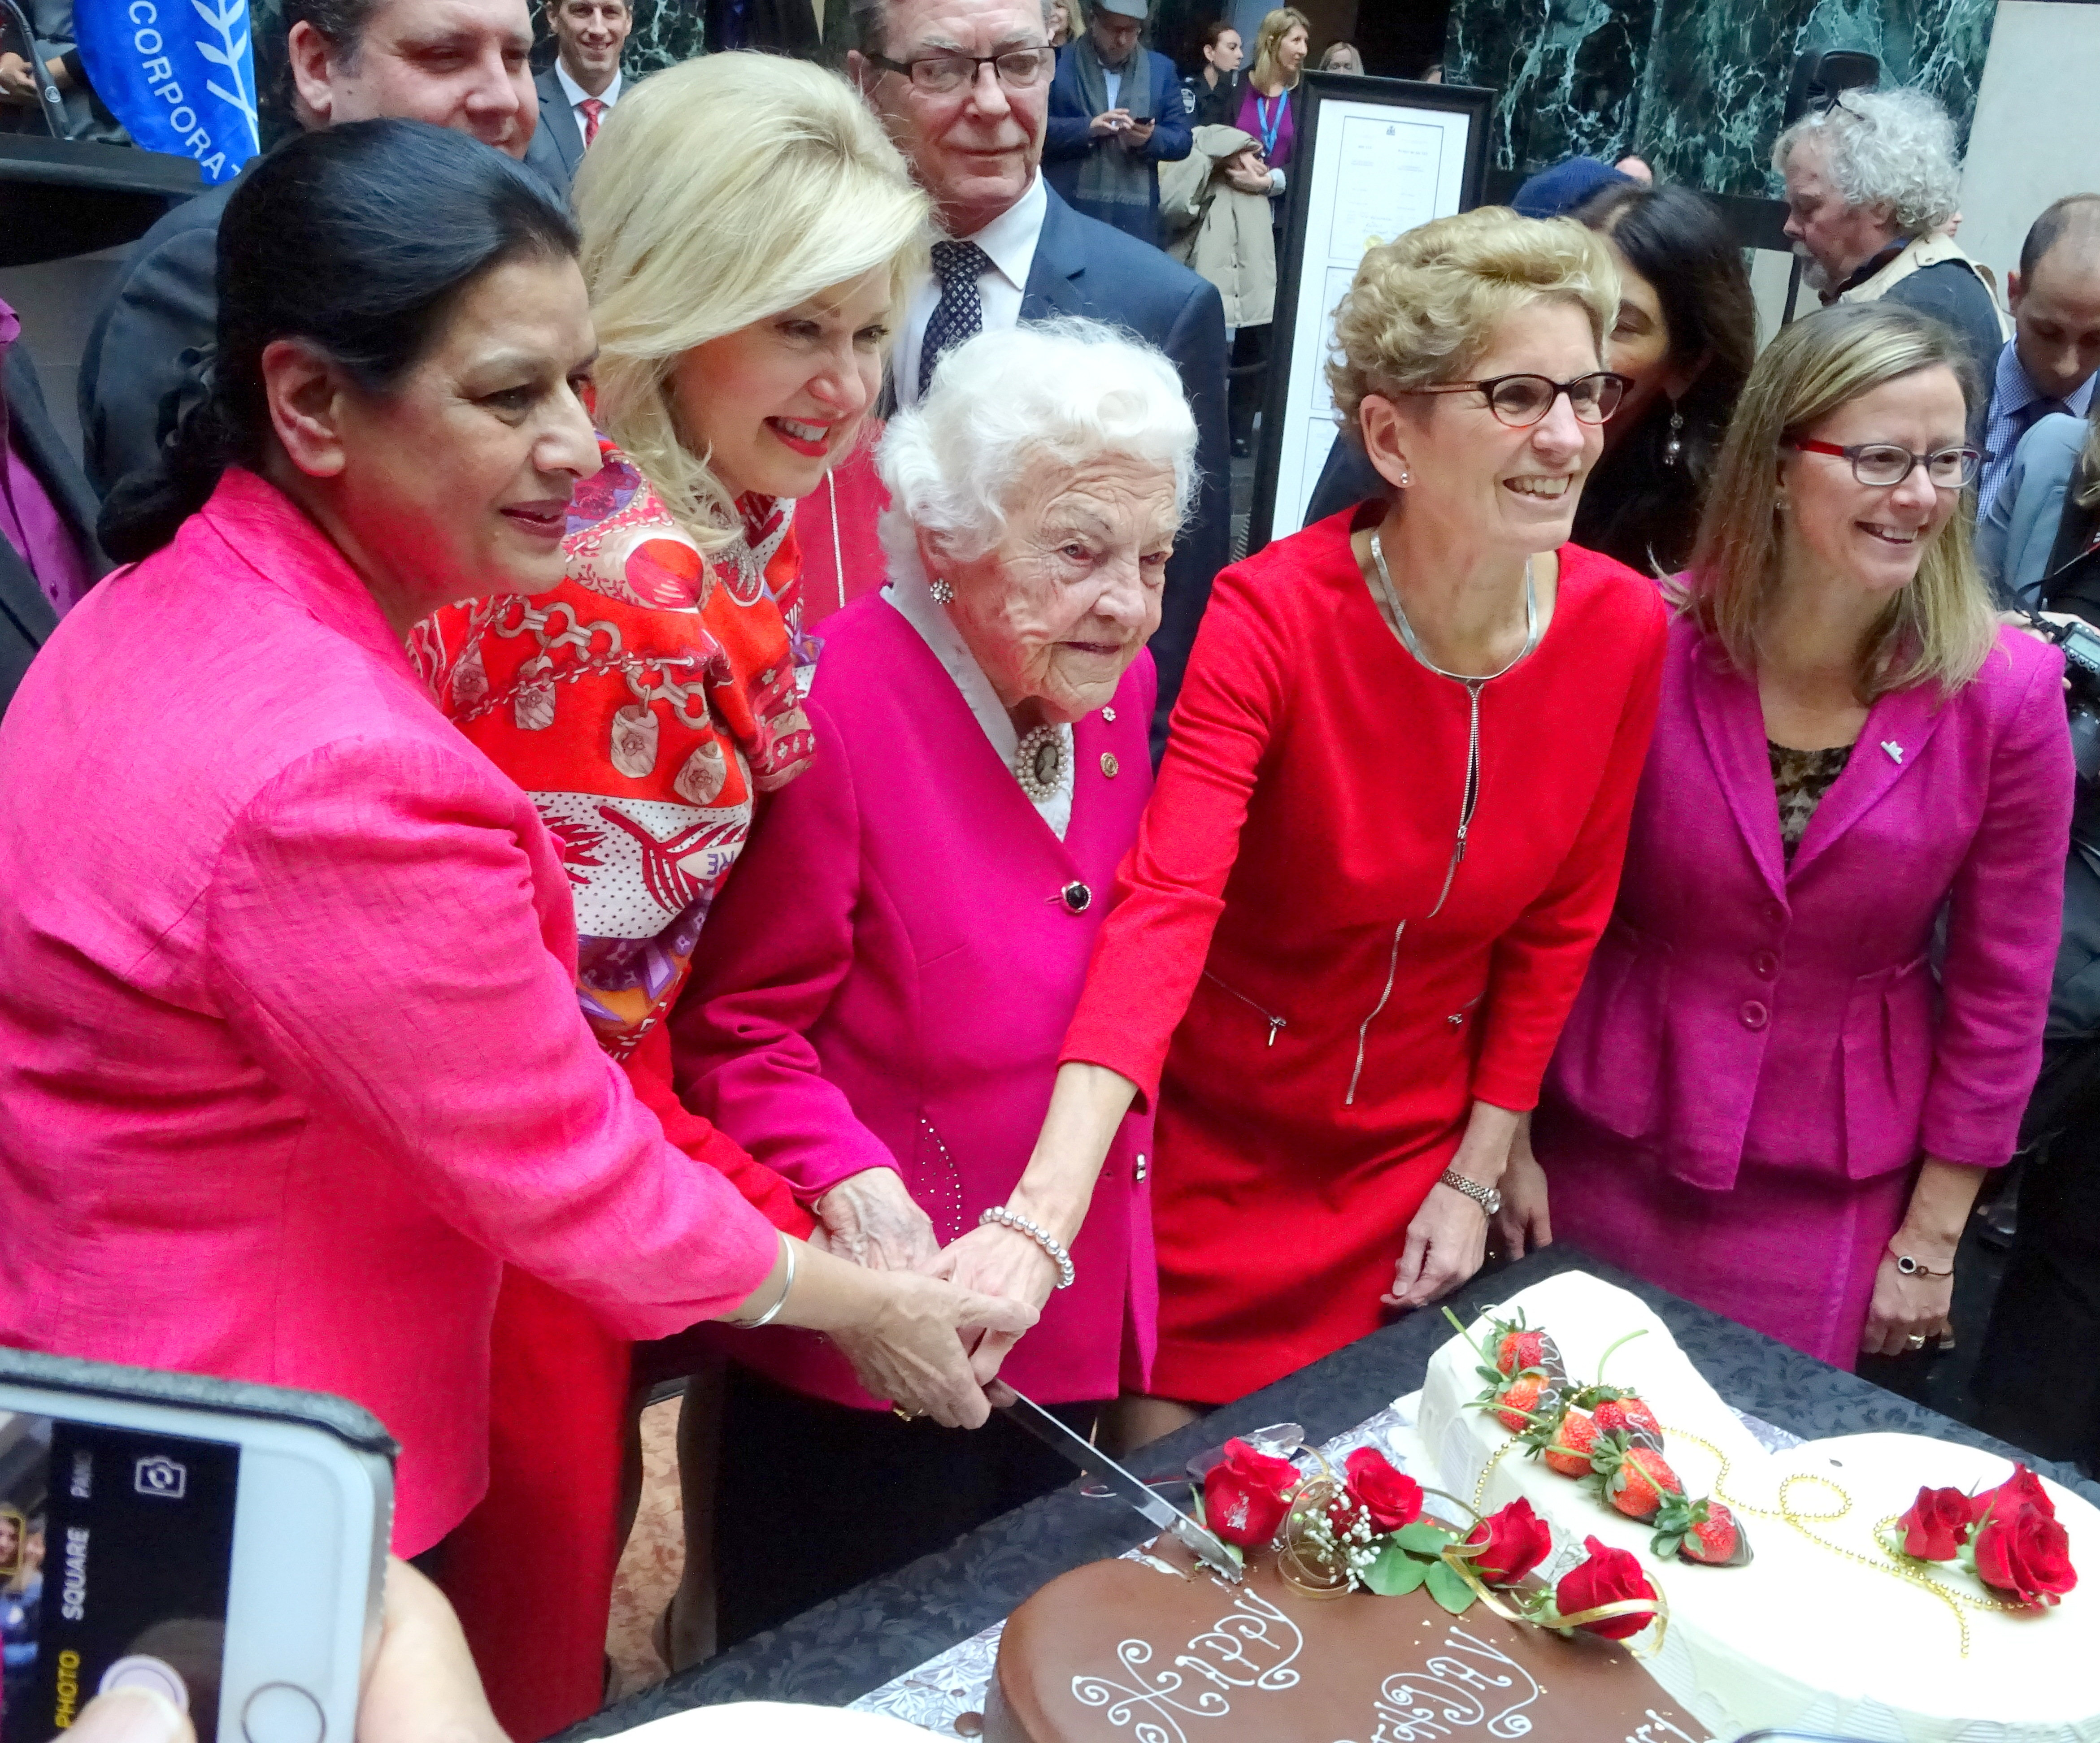 MPP Amrit Mangat, Mayor Bonnie Crombie, and Ontario Premier Kathleen Wynne help Hazel McCallion cut her 96th Birthday Cake, with Ward 3 Councillor Chris Fonseca, Mississauga Civic Centre, 14Feb17